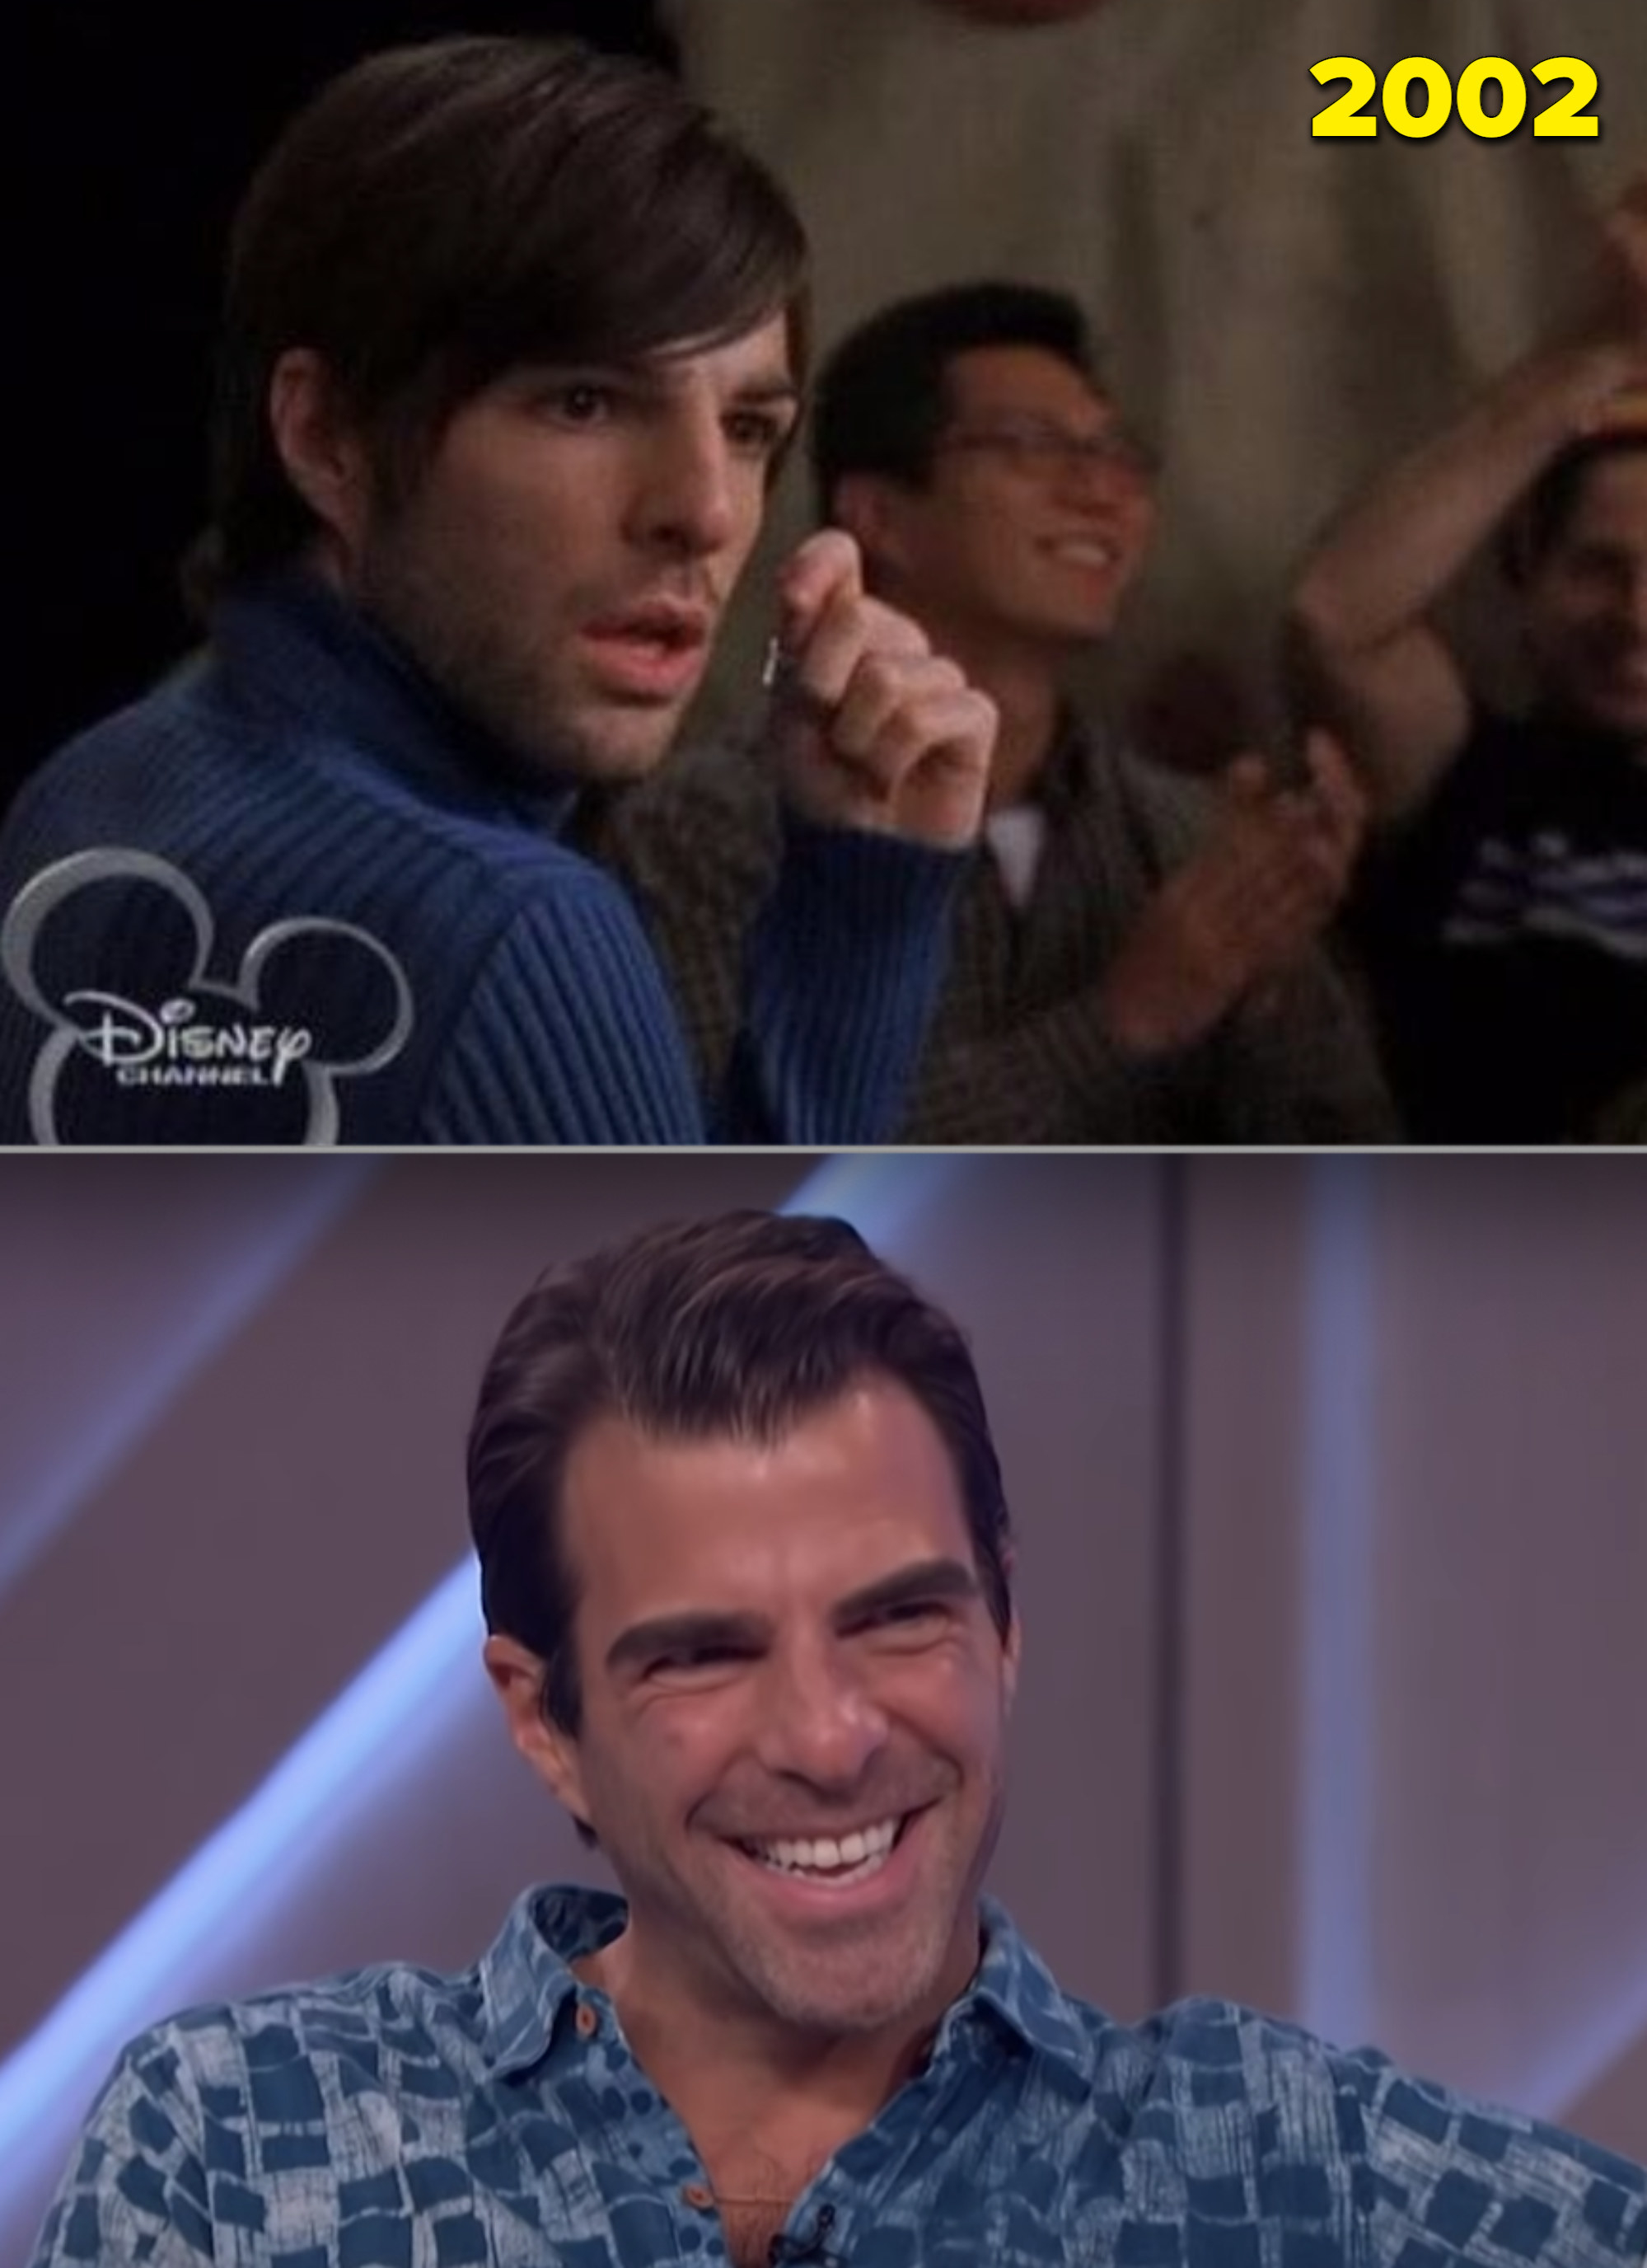 """Zachary Quinto on """"Lizzie McGuire"""" vs. being interviewed in 2020"""